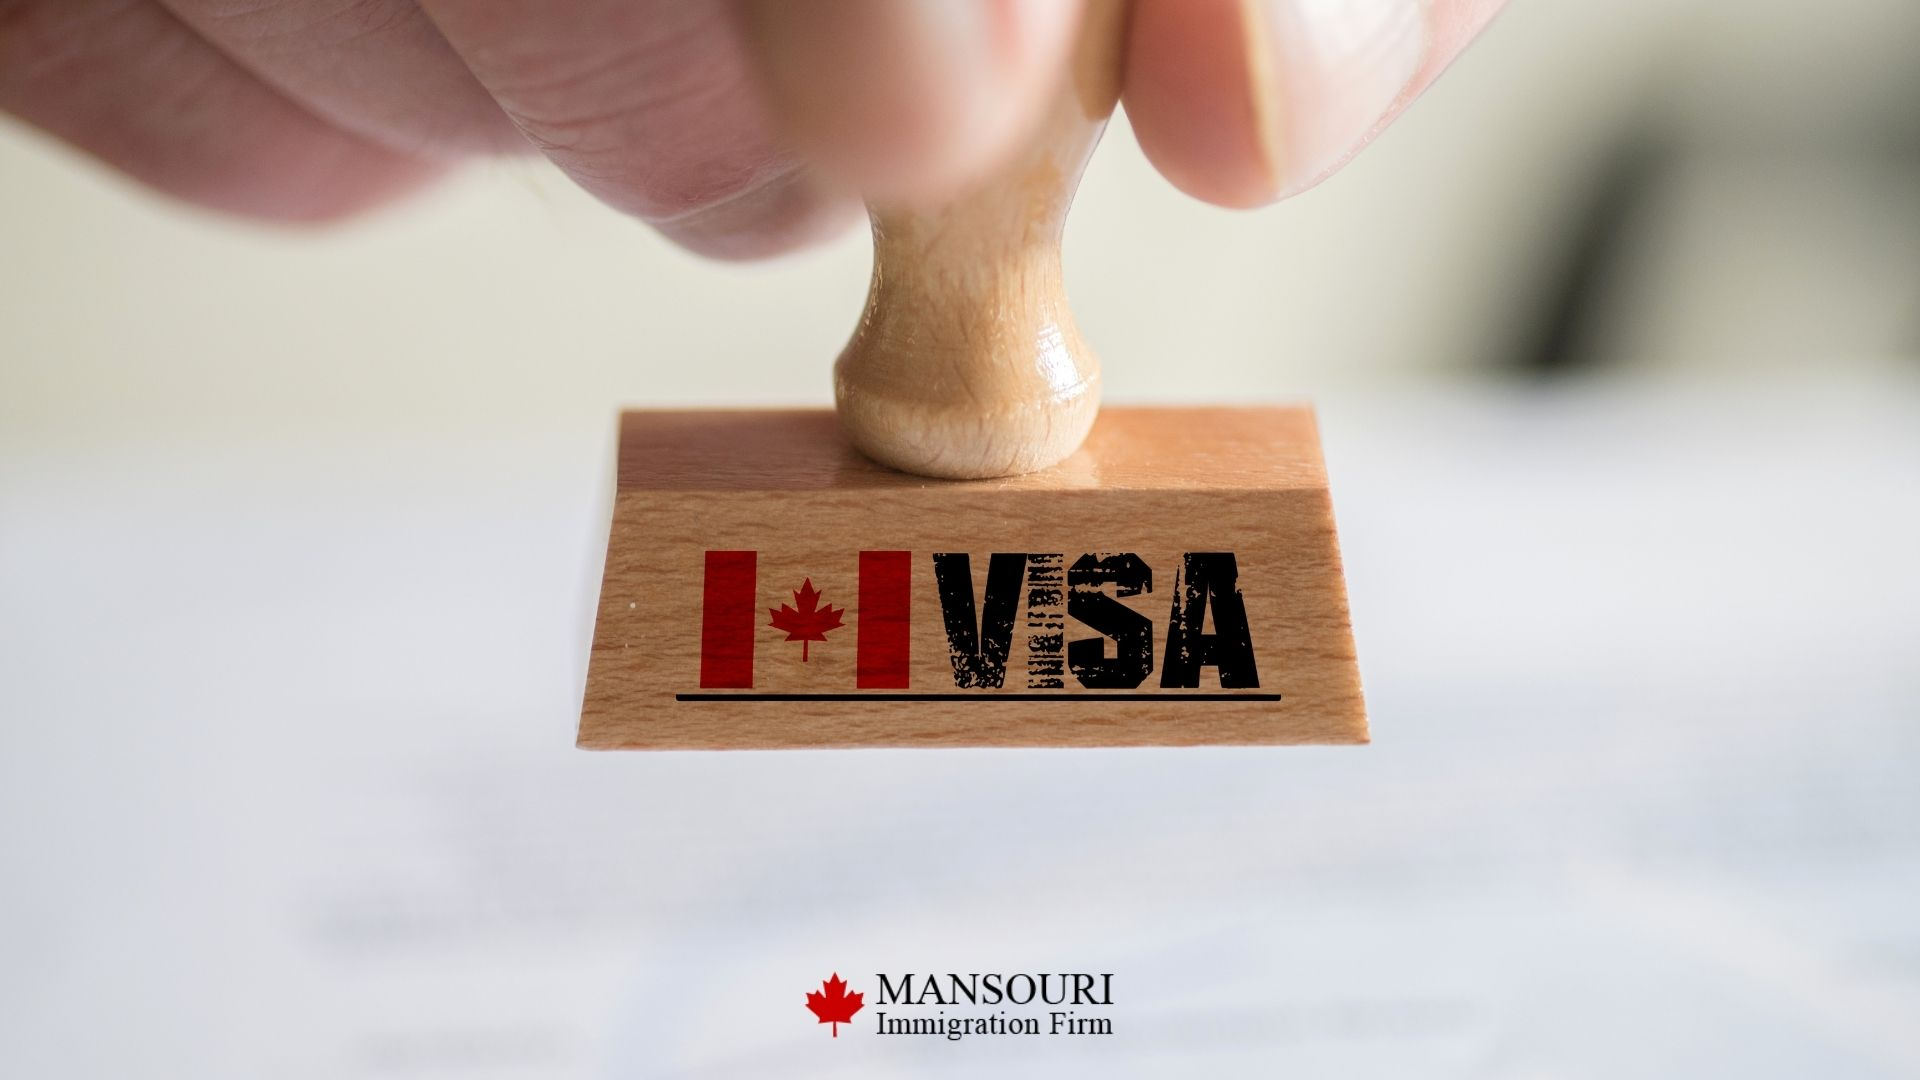 Canada may extend the pathway to permanent residency